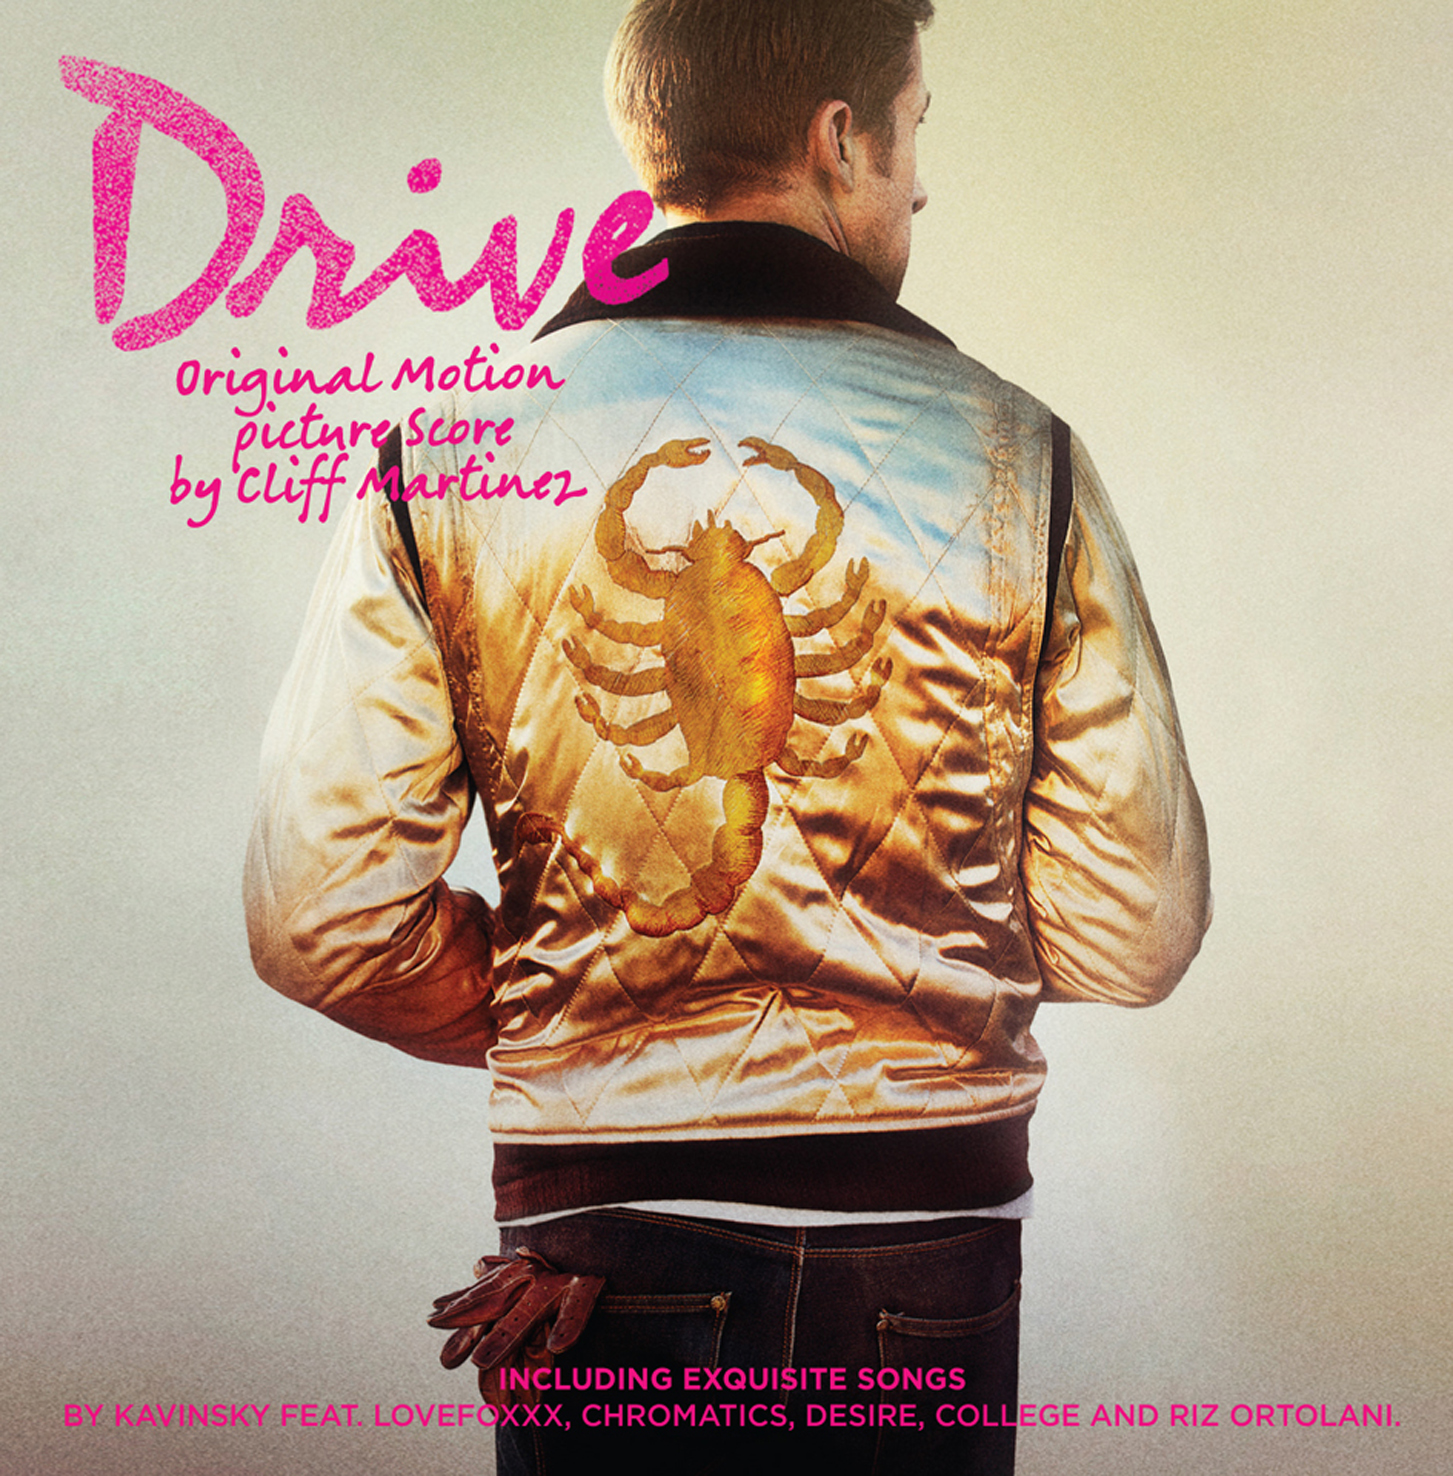 DRIVECOVER